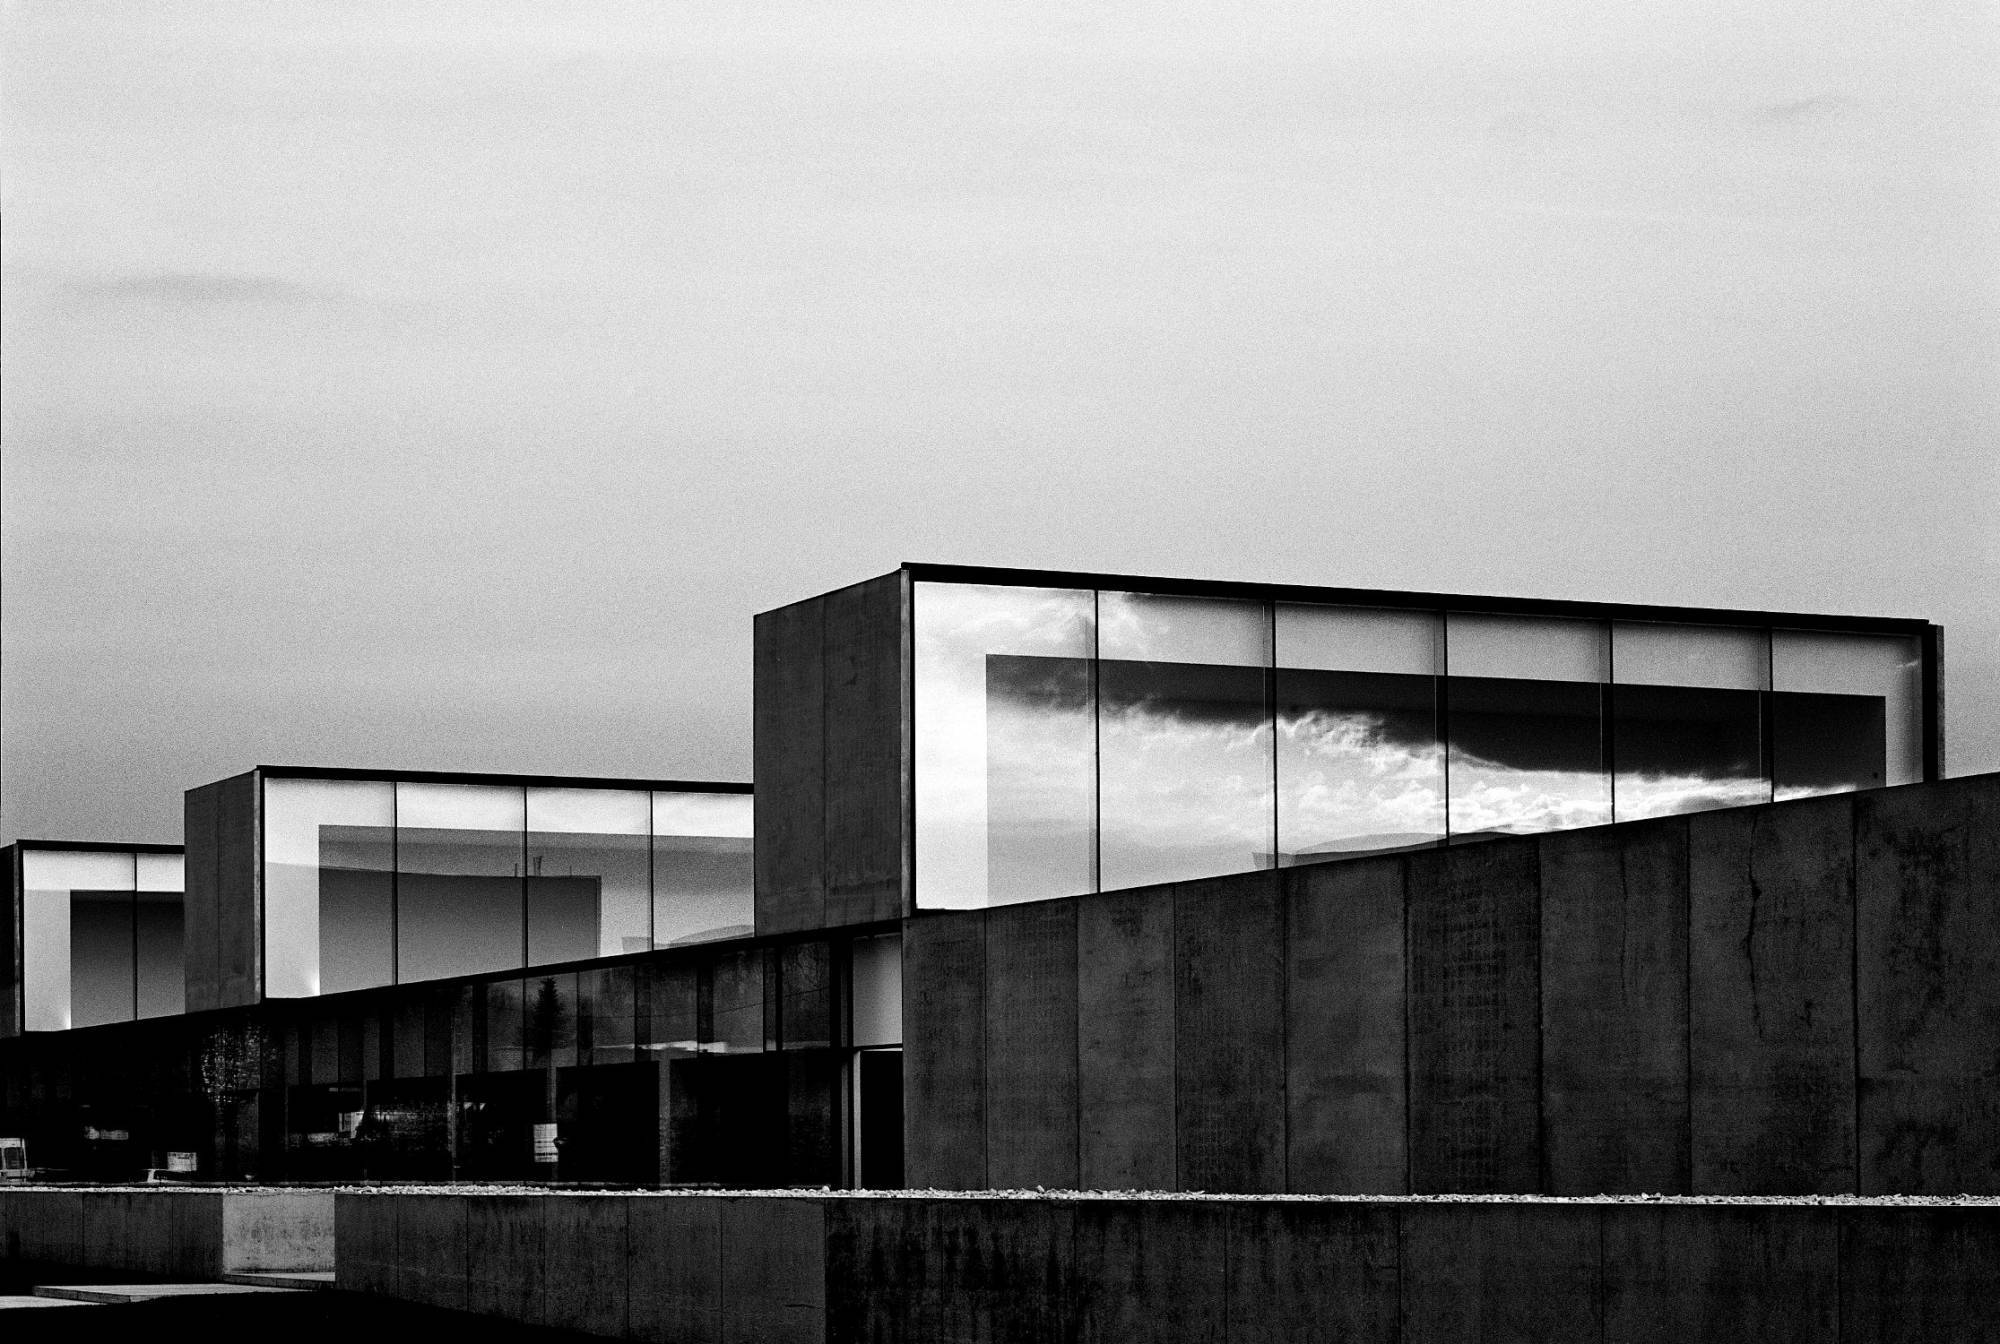 VVDA_Concordia Offices_Alberto Piovano_1